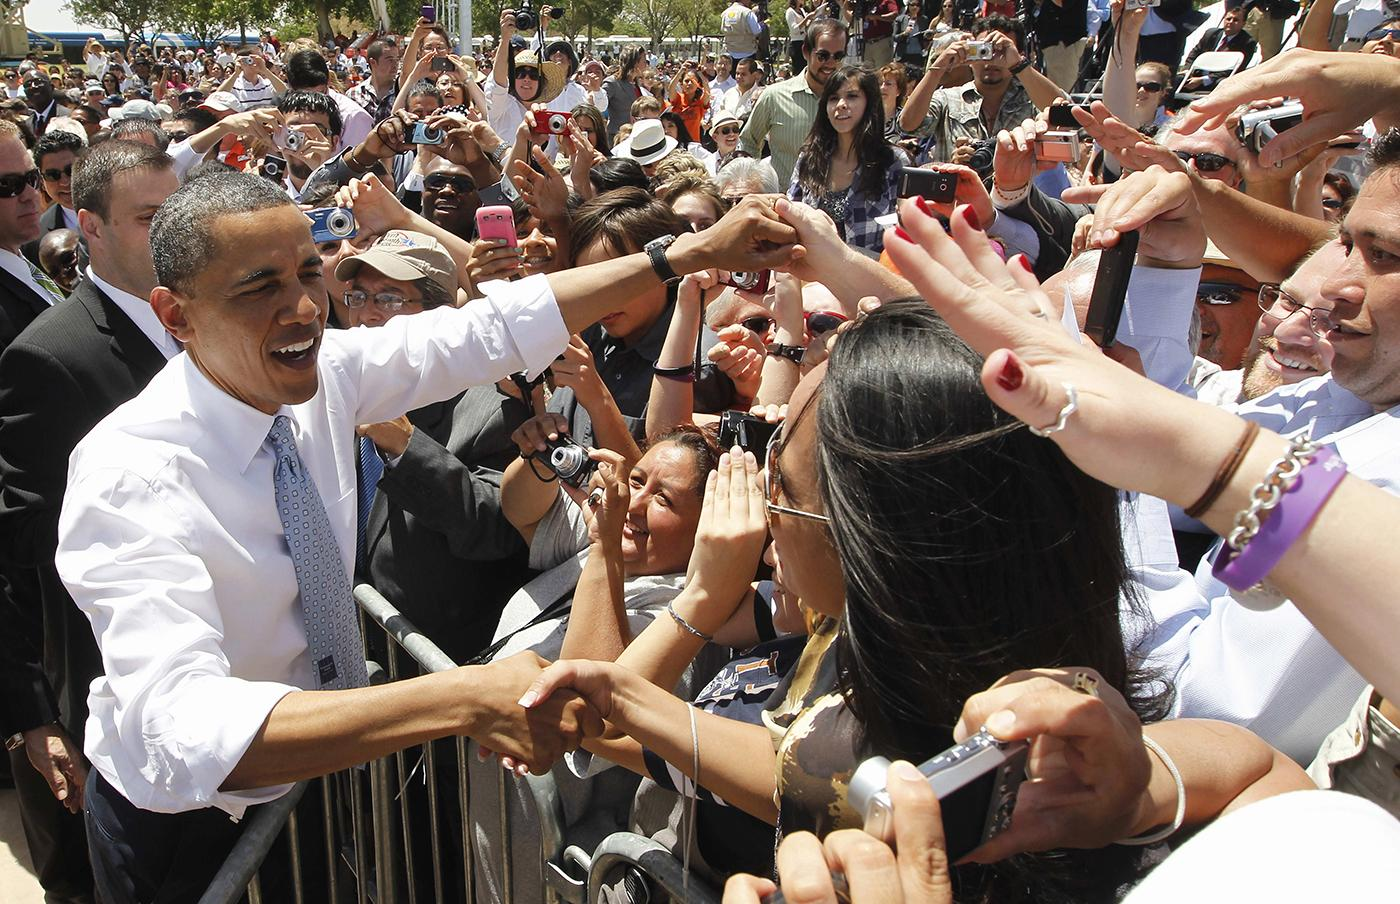 President Barack Obama greets audience members after he spoke about immigration reform at Chamizal National Memorial Park in El Paso, Texas, Tuesday, May 10, 2011. Photo: AP Photo/Charles Dharapak